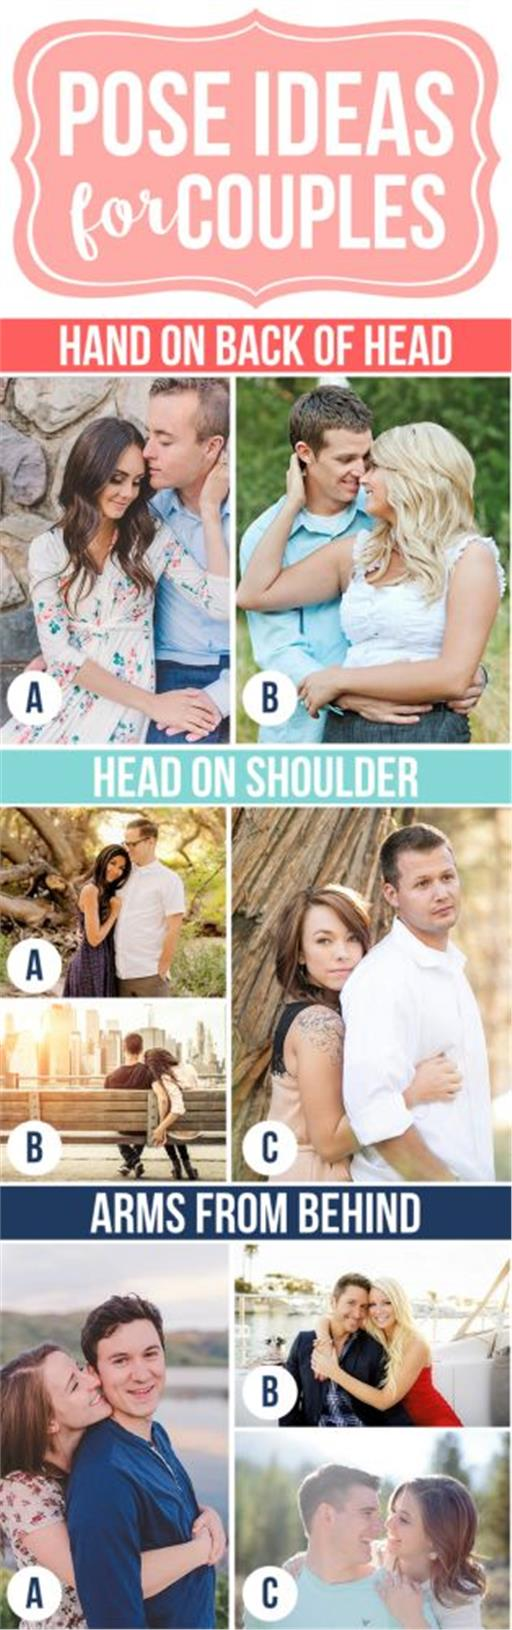 27396767_Pose_Ideas_for_Couples_2.limghandler